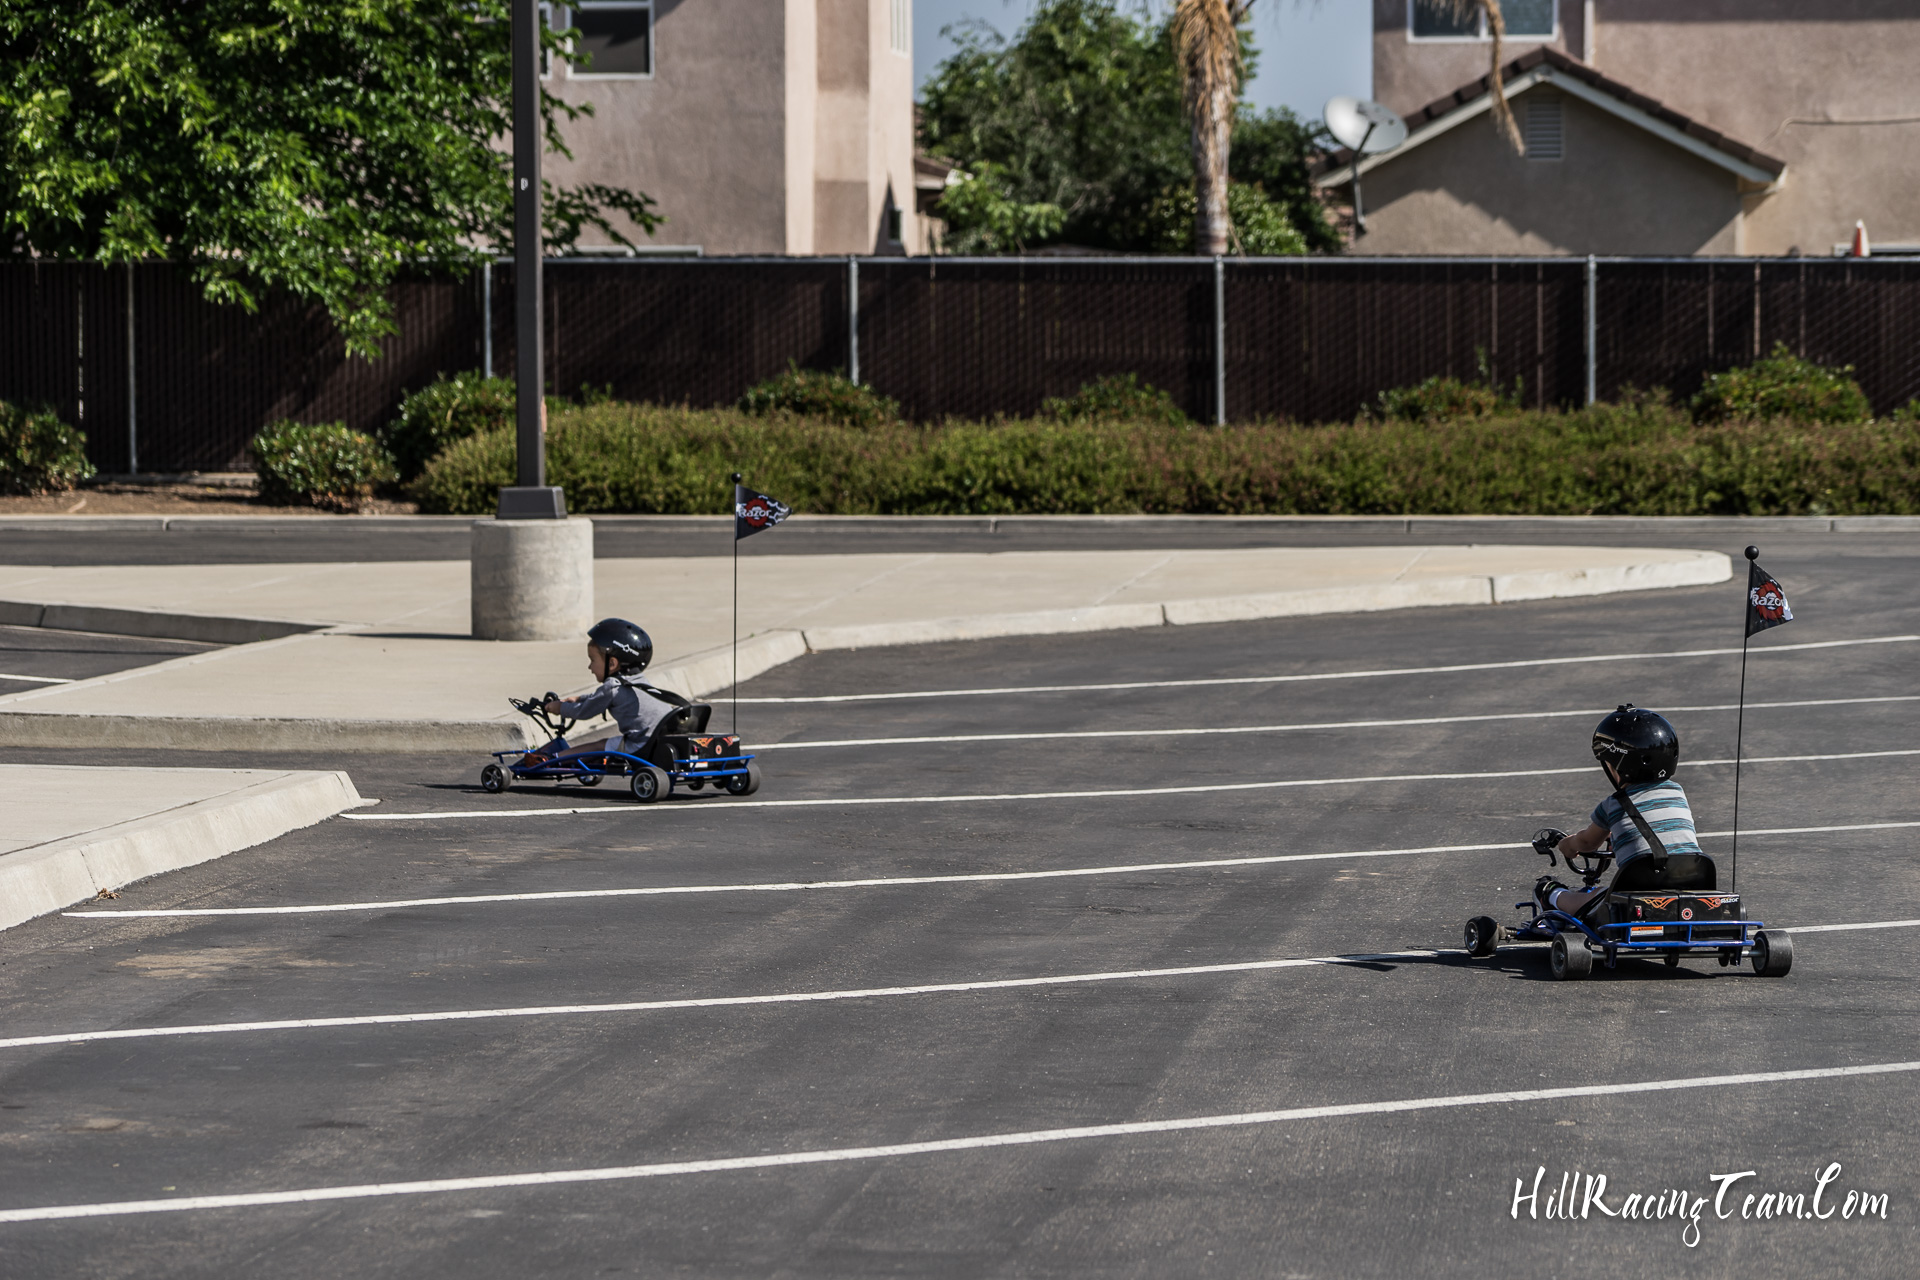 Razor Drifter Kart Racing Parking Lot Hill Racing Team